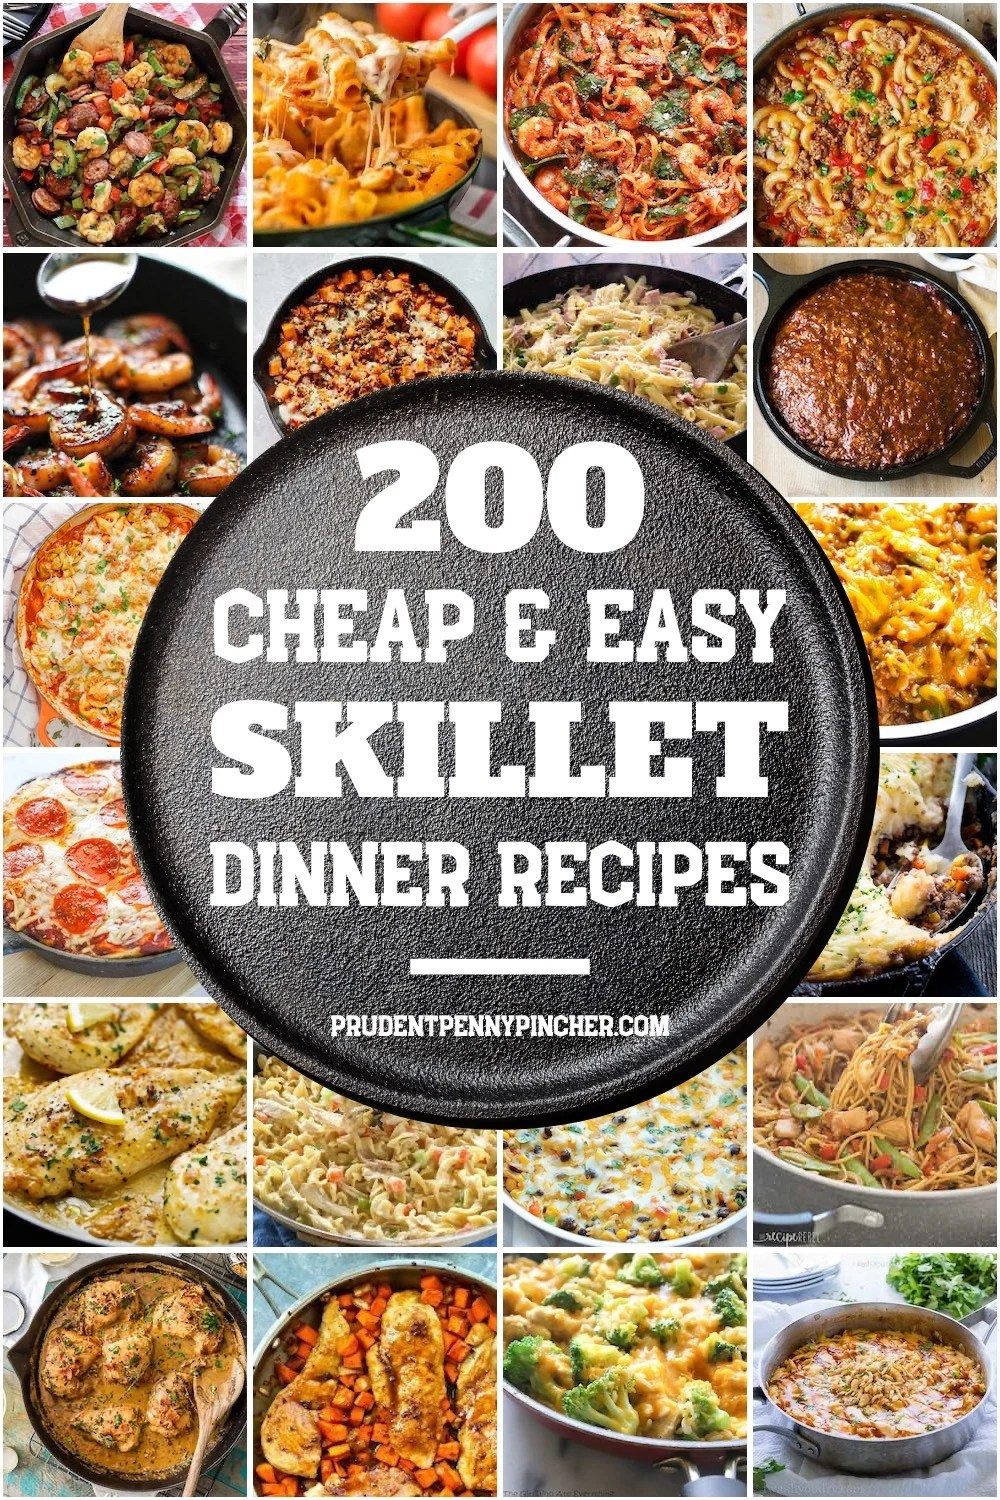 200 Cheap and Easy Skillet Recipes